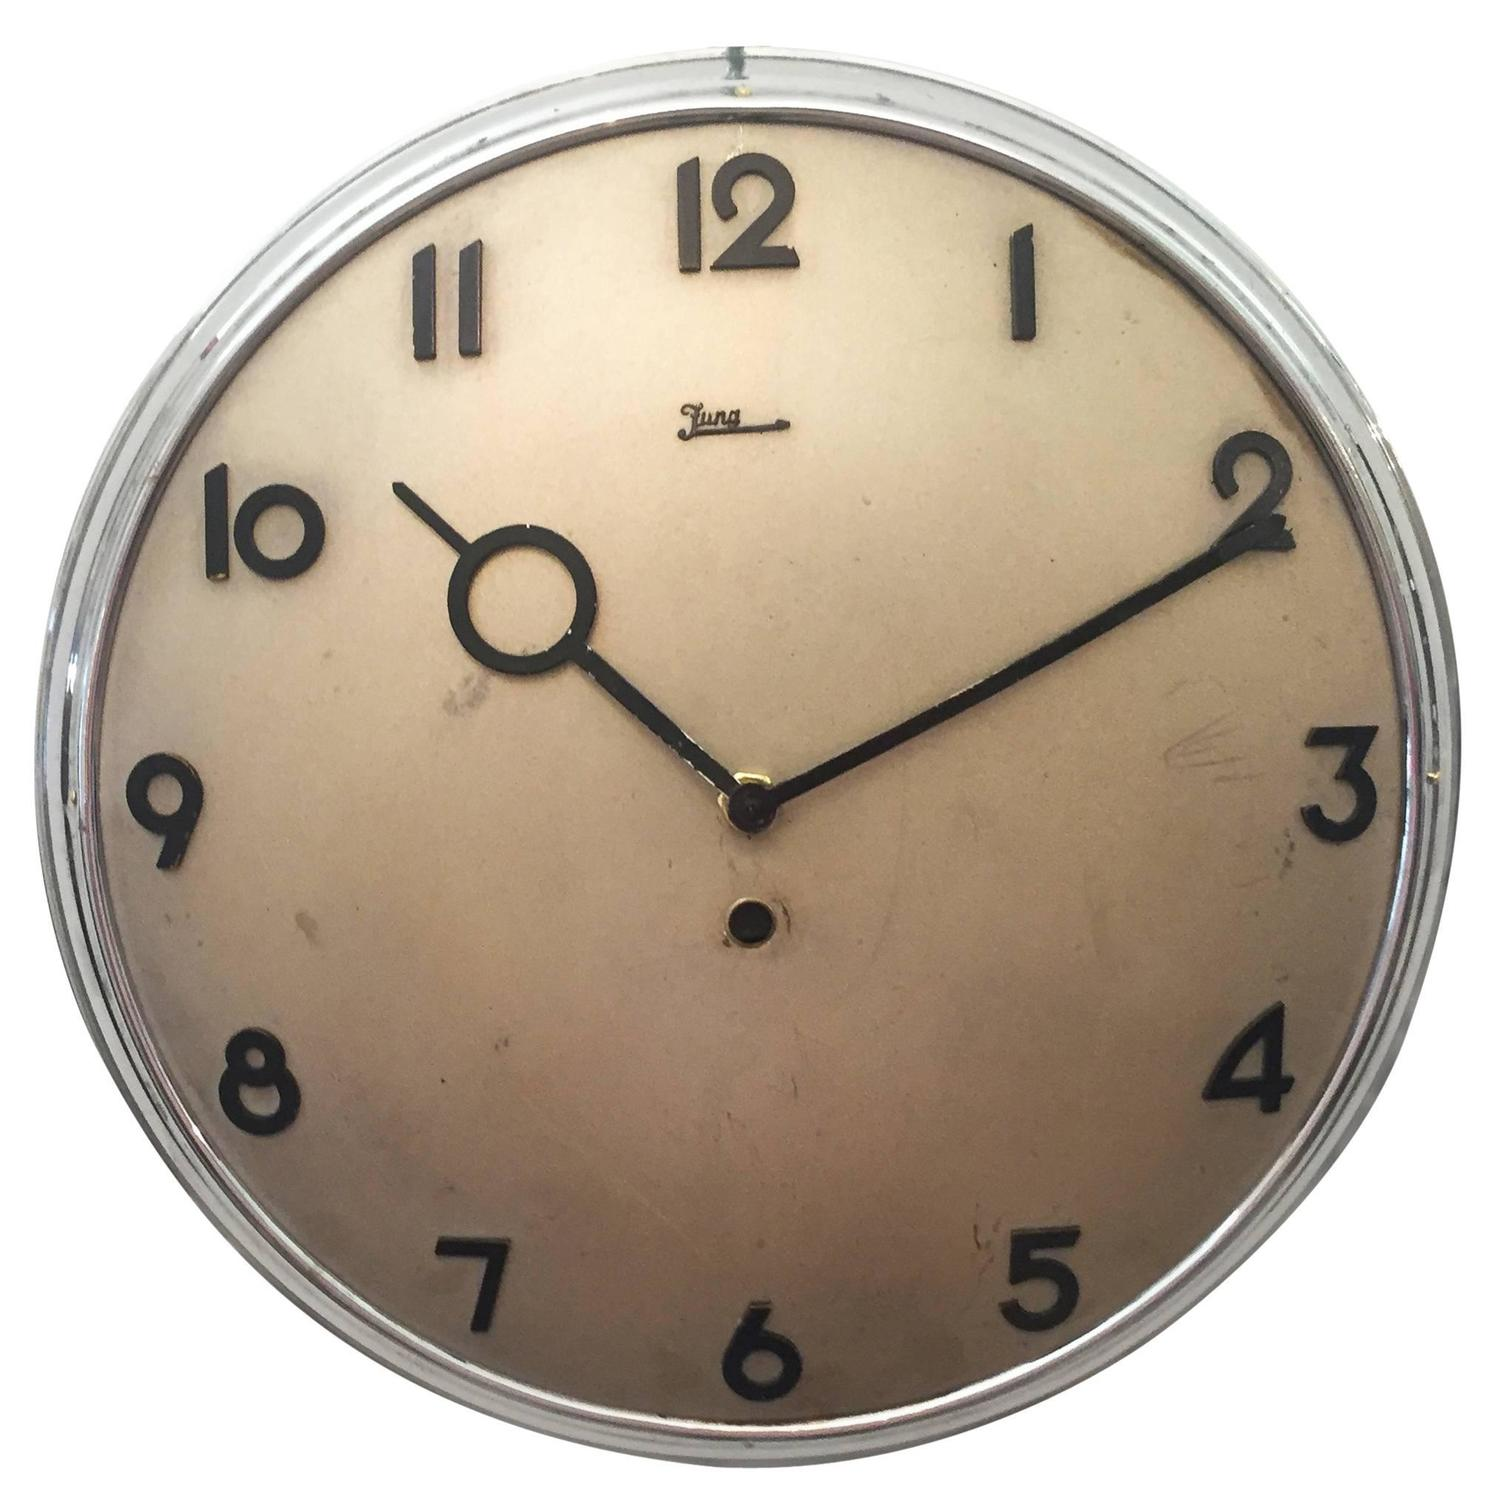 Junghans bauhaus wall clock from the 1930s for sale at 1stdibs amipublicfo Images